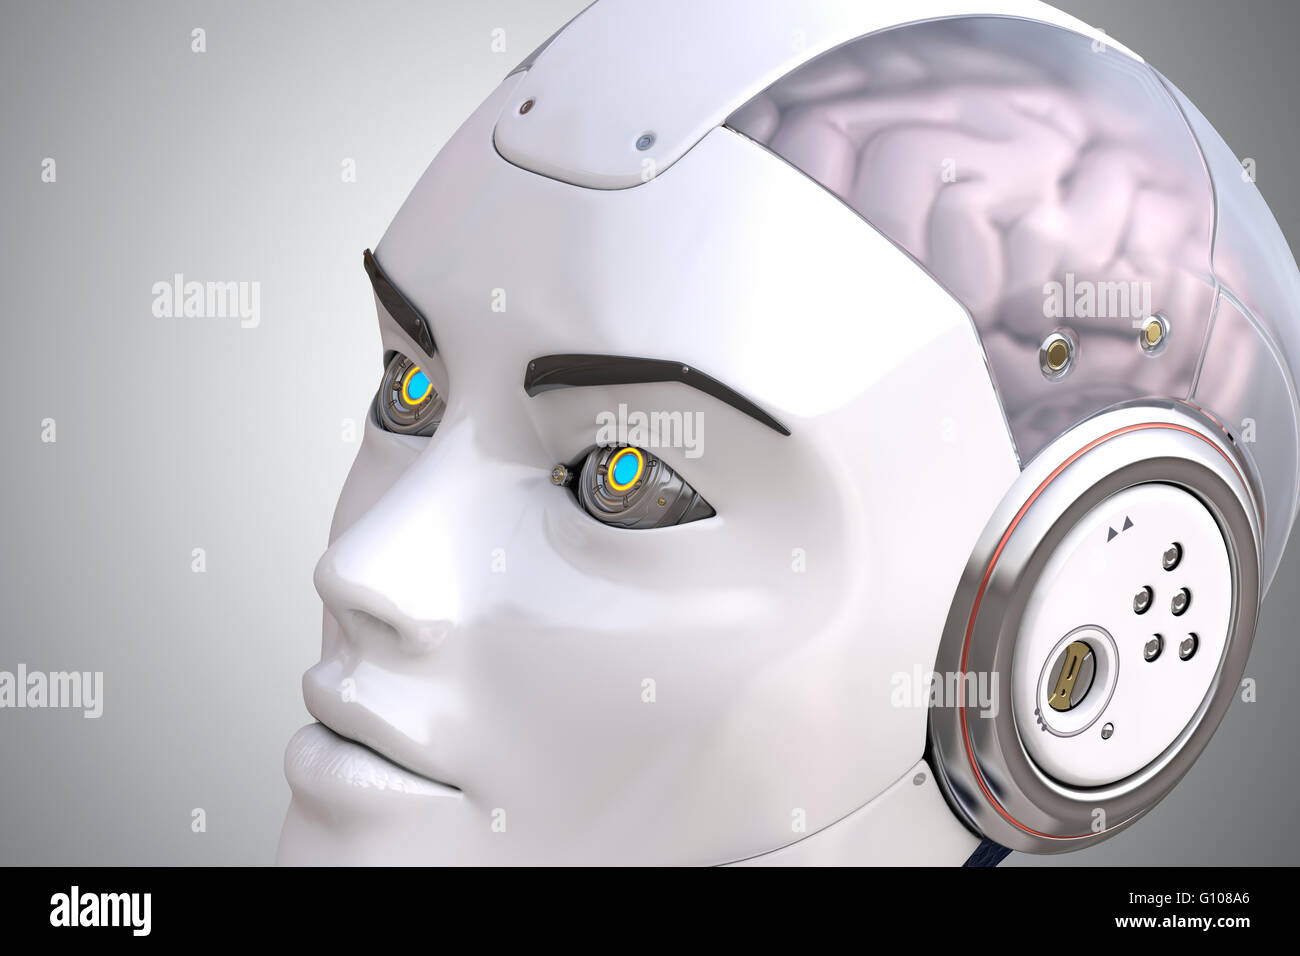 Robot's head close up - Stock Image